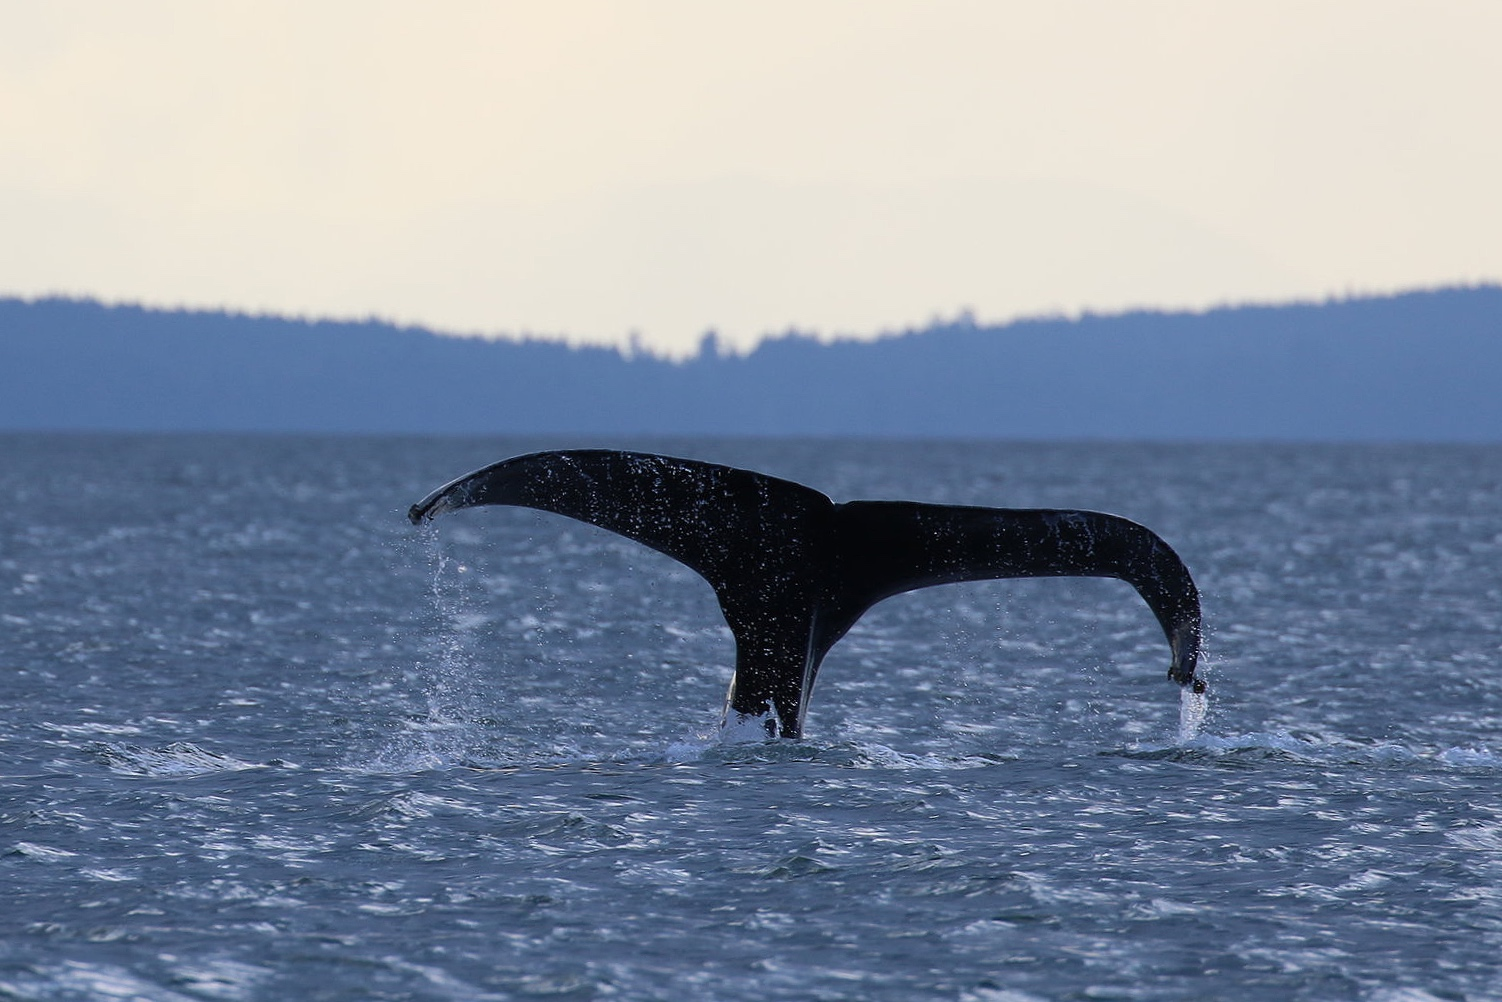 """BCX0915 - """"Fallen Knight"""". Note how curved the right side of her fluke is. Photo by Natalie Reichenbacher (3:30)."""